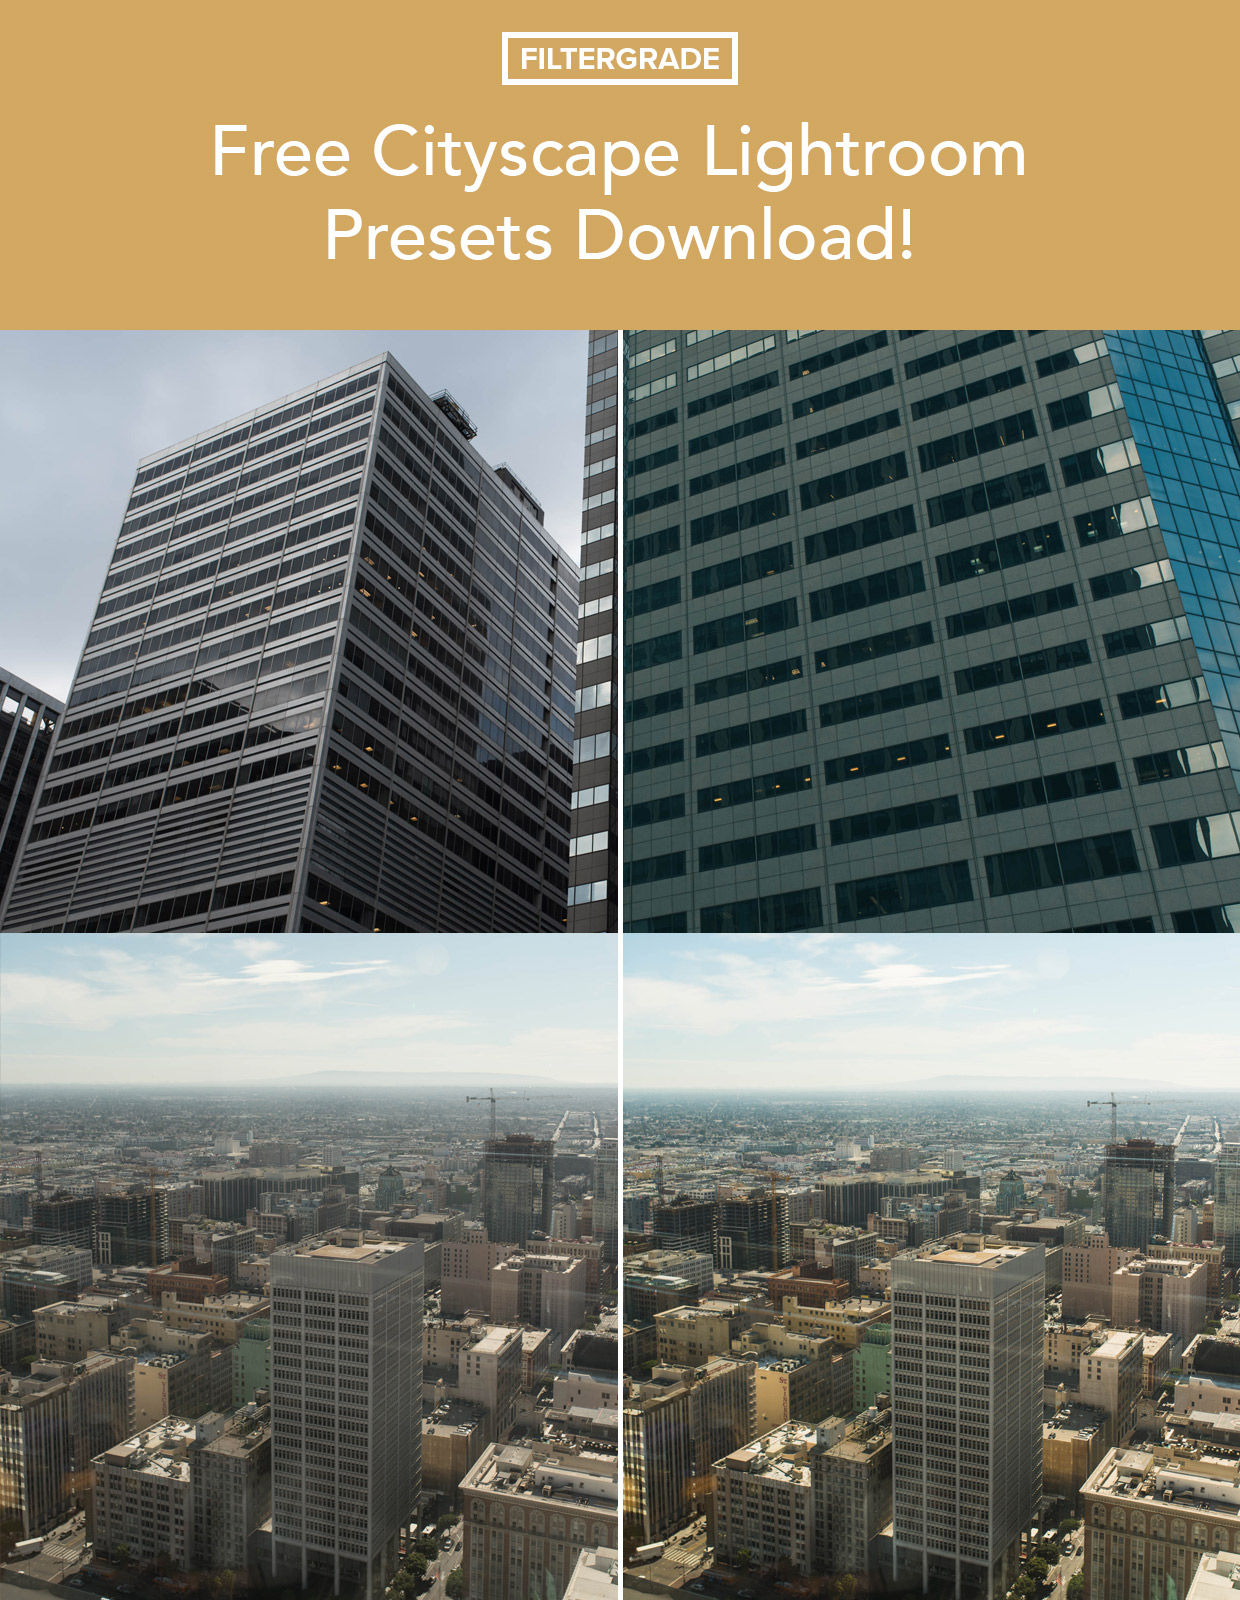 Free Cityscape Lightroom Presets Download - FilterGrade